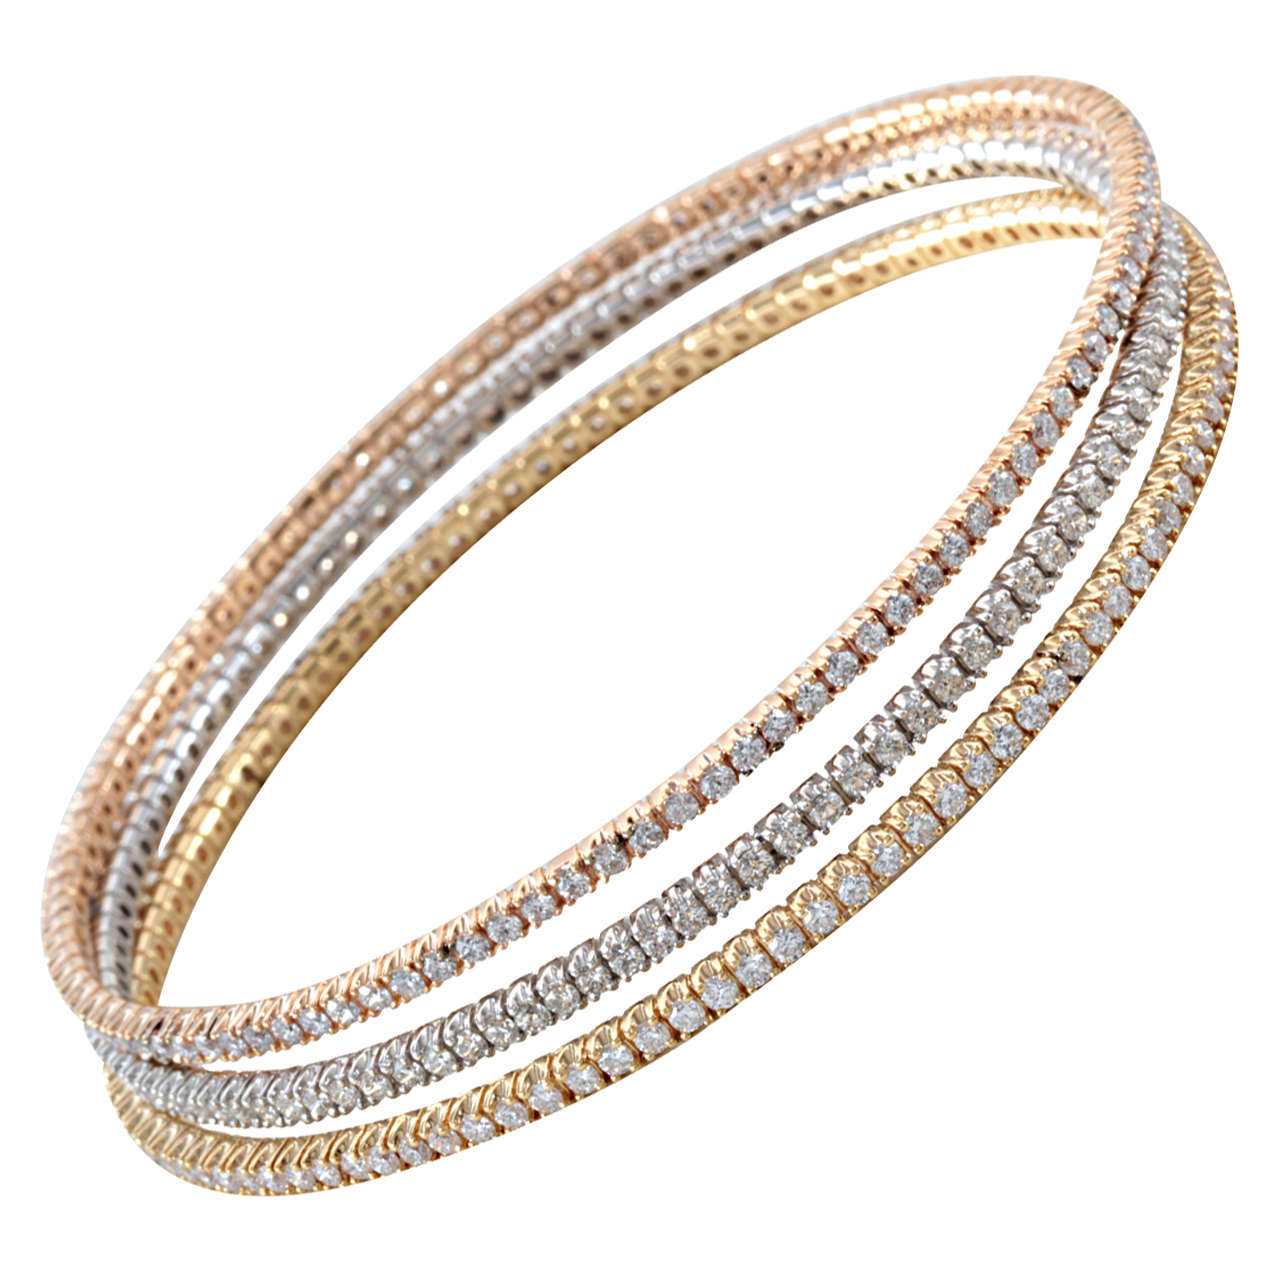 gold bracelets karat pin etruscan bangles things by thousand bangle ylang pearl black at ten